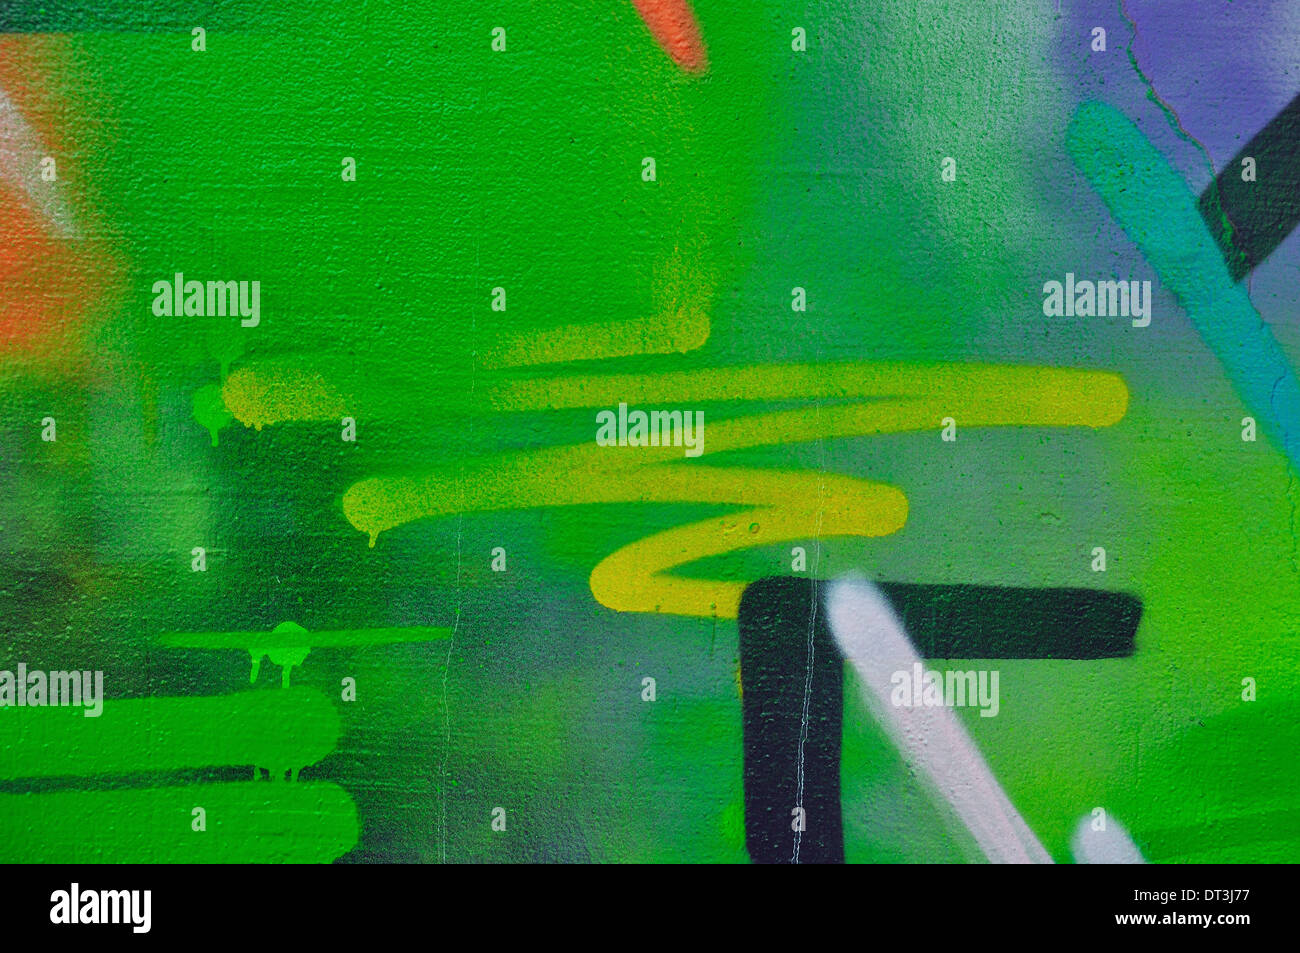 Paint stained wall abstract smudged overlapping graffiti background texture. - Stock Image